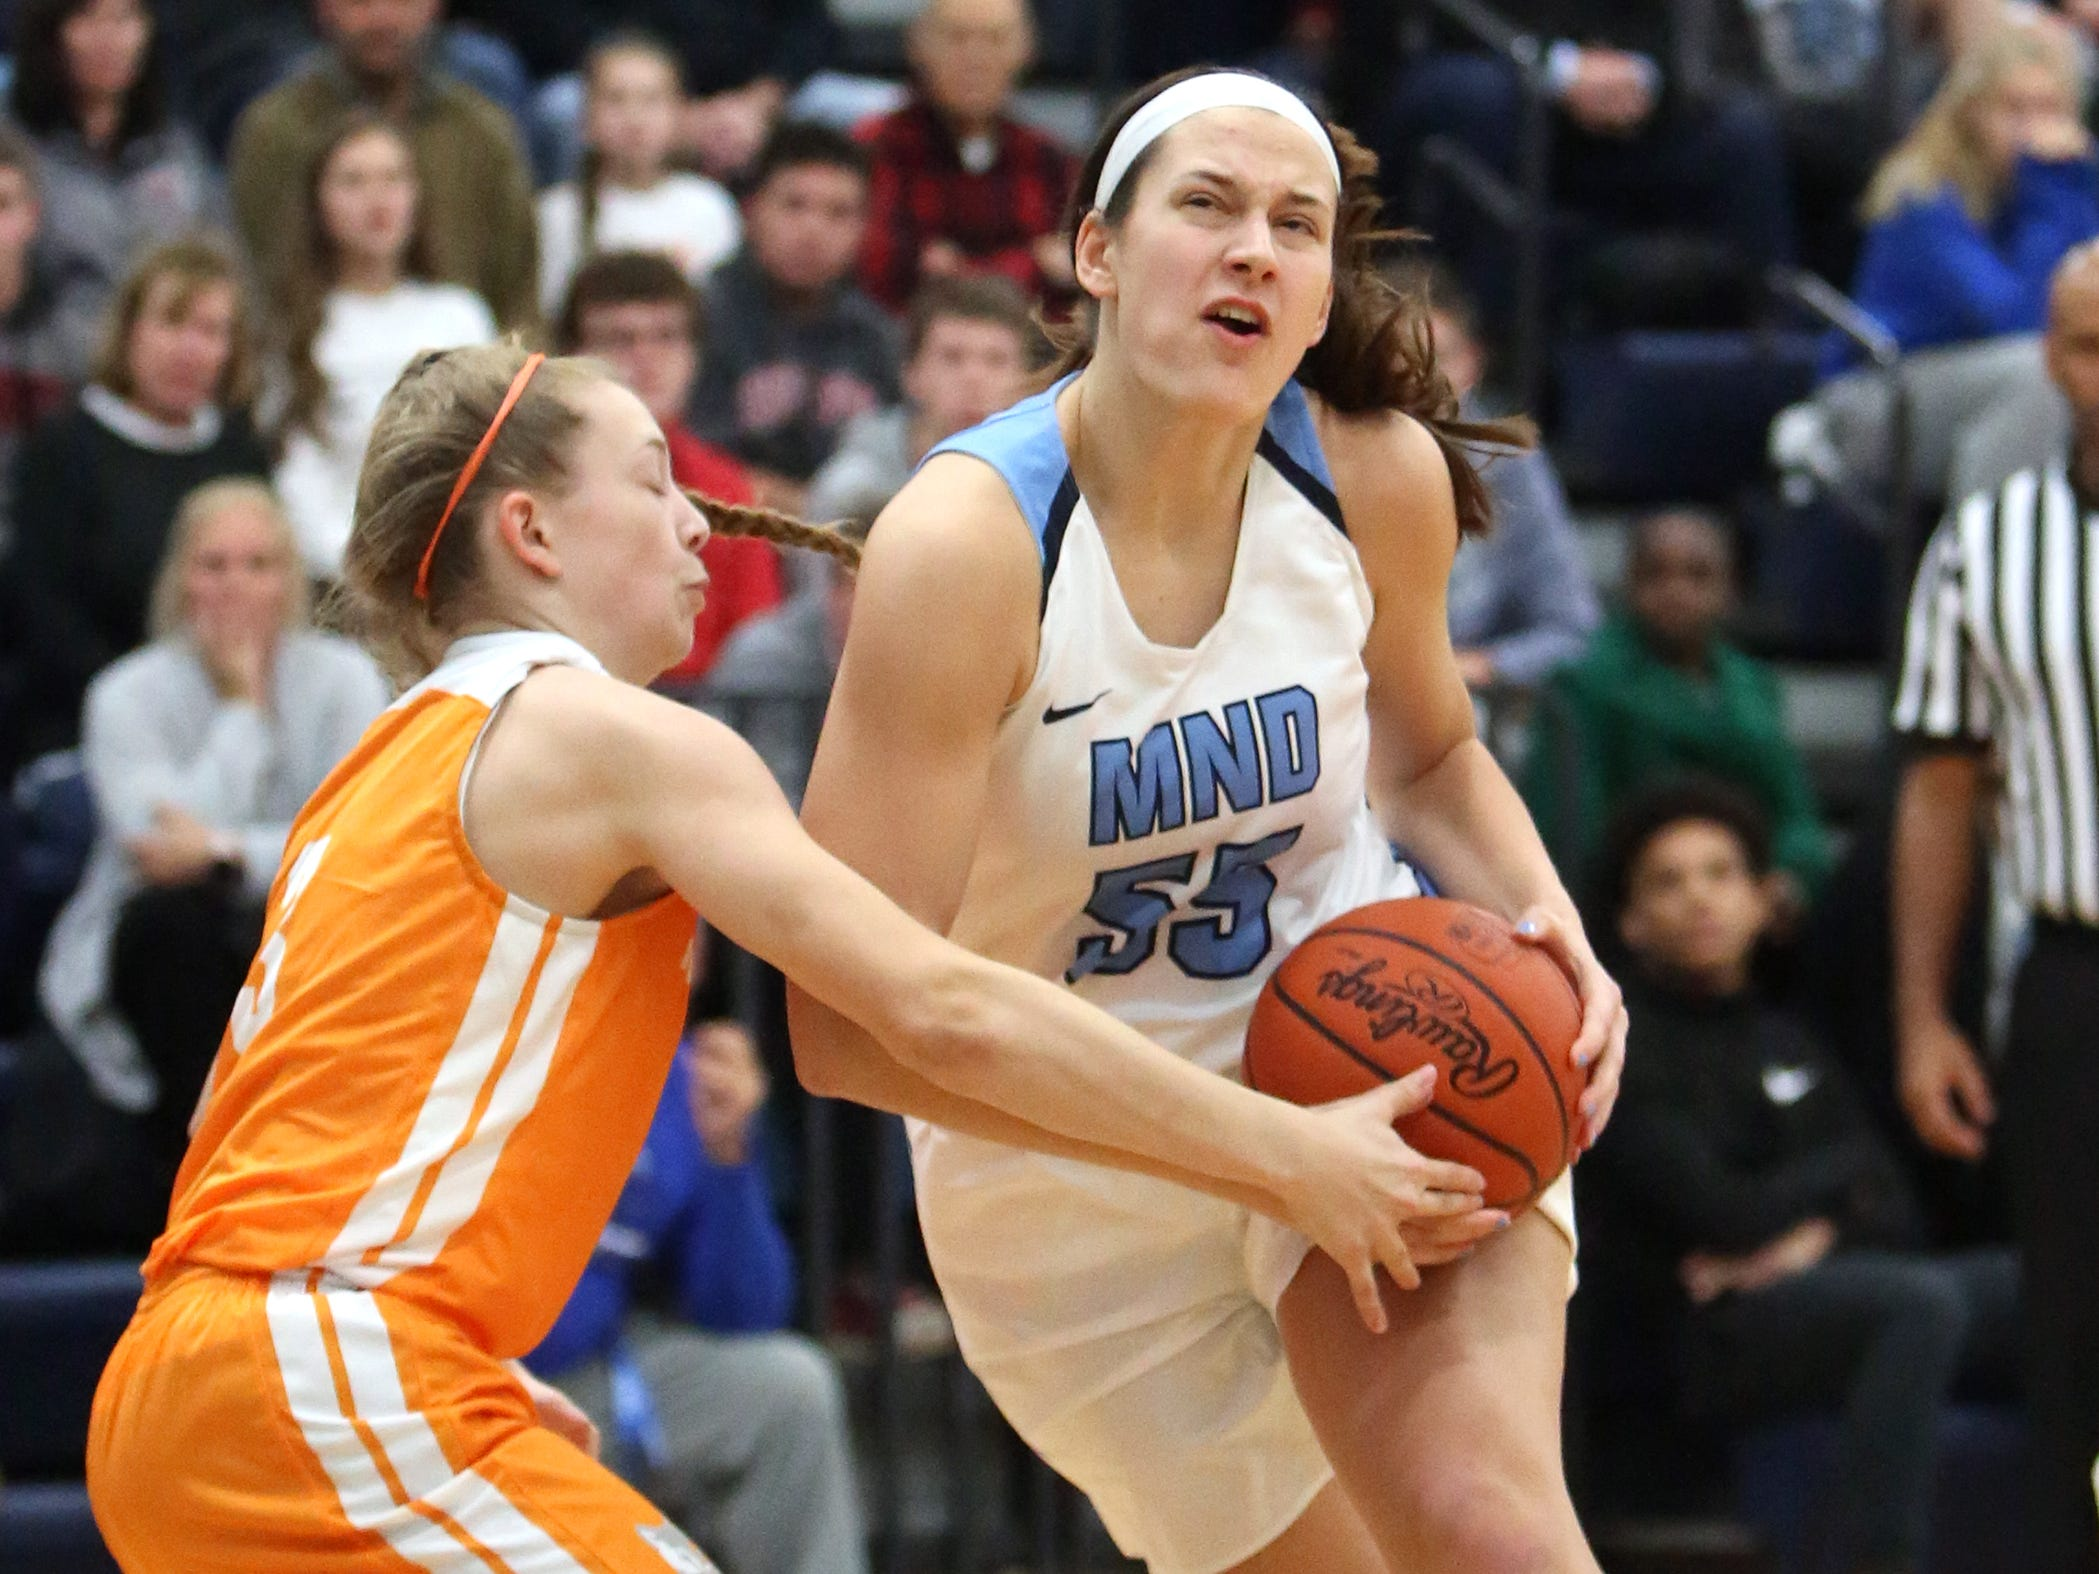 MND Forward Julia Hoefling drives to the basket.